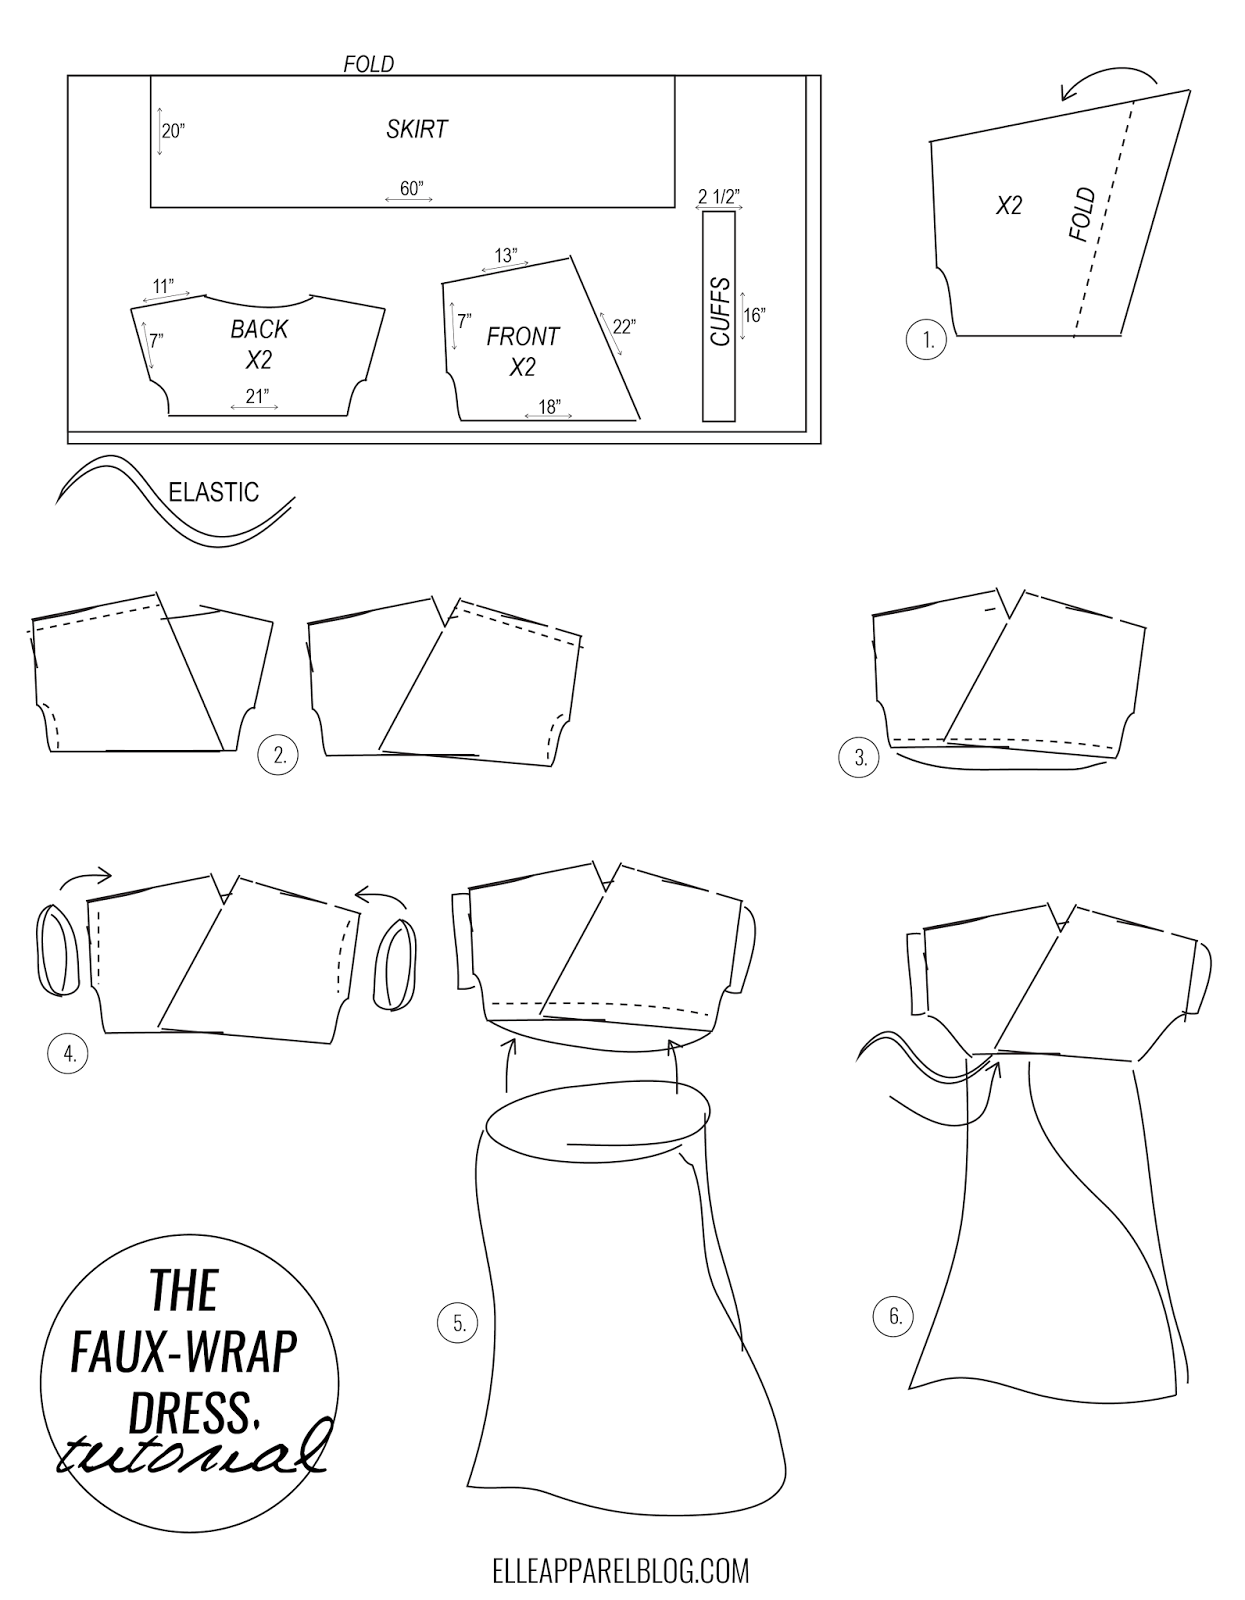 THE FAUX-WRAP DRESS TUTORIAL | sewing and embroidery | Pinterest ...